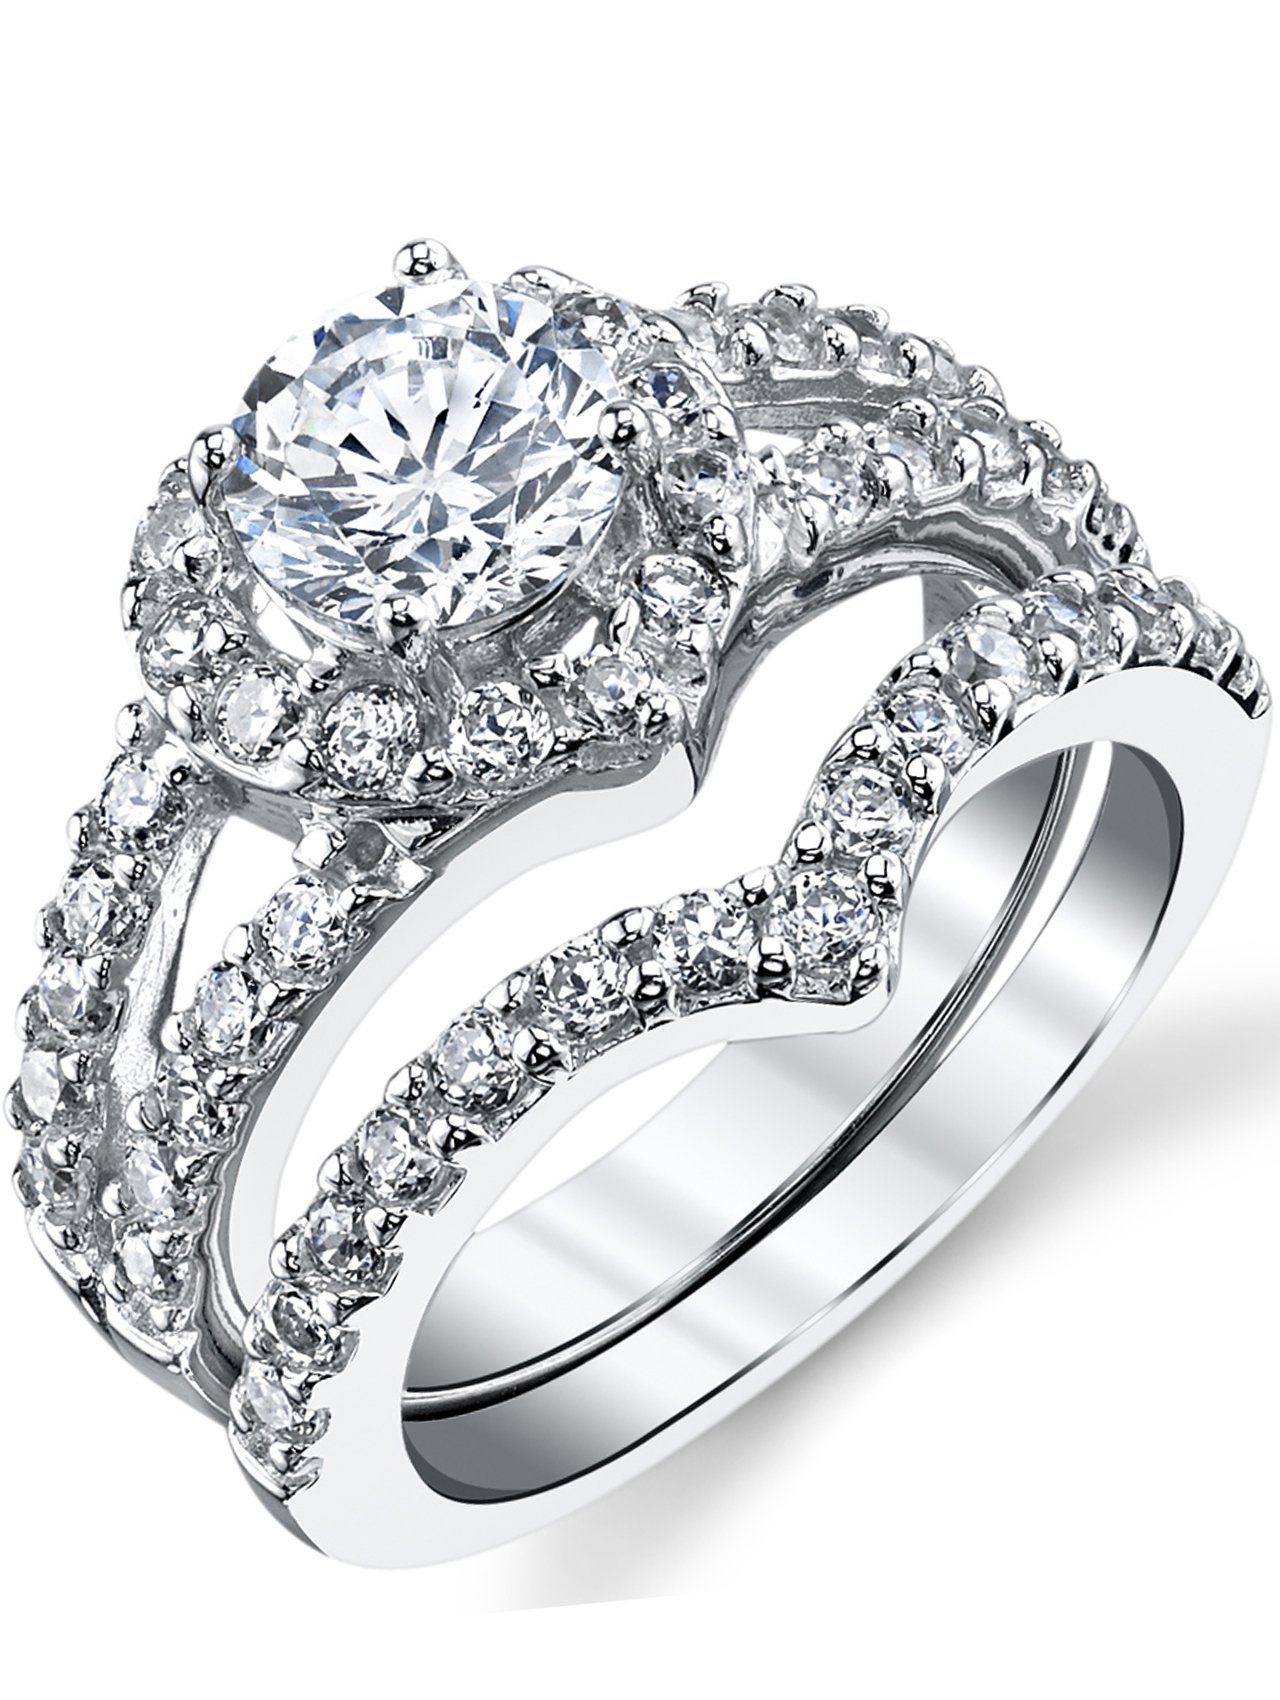 Round Brilliant Cut Heart Shaped Sterling Silver 2-Pc Bridal Set Engagement Wedding Ring Bands W/Cubic Zirconia